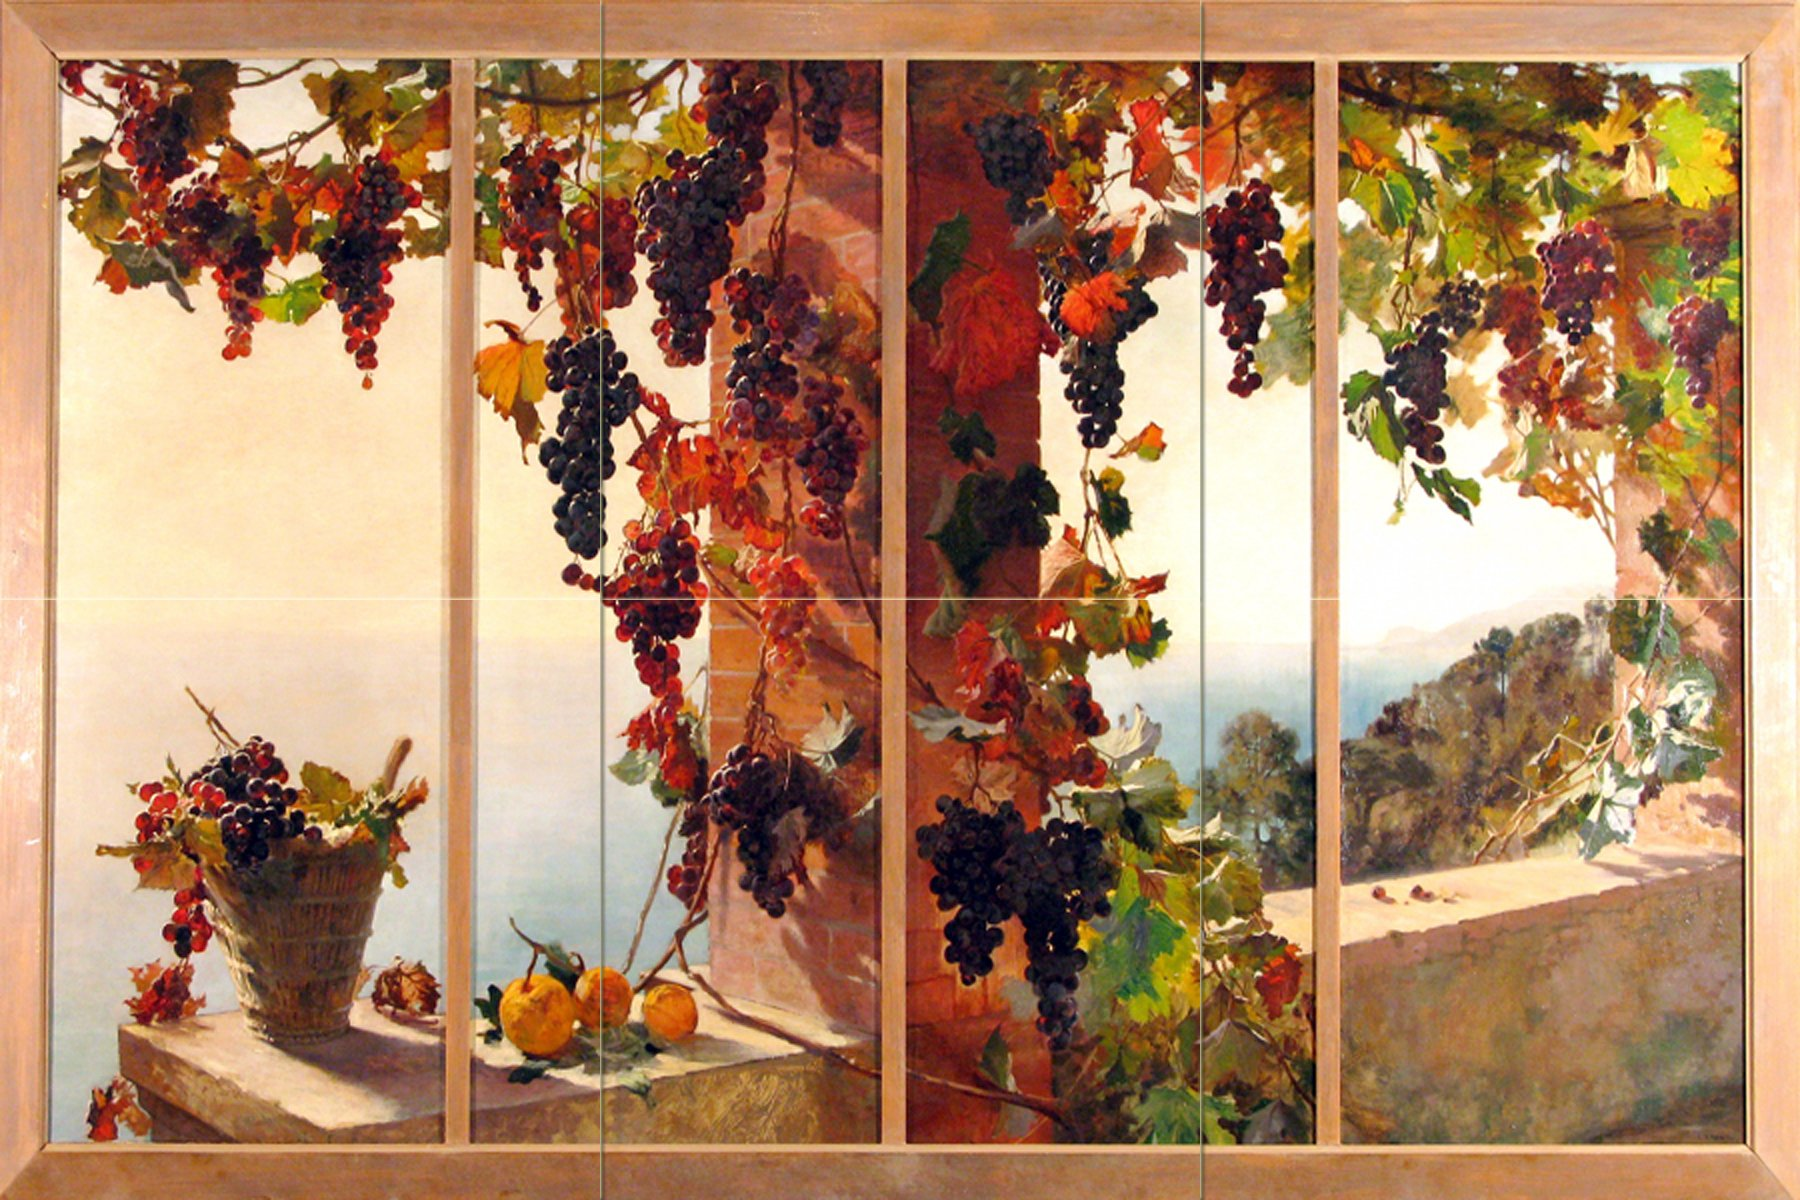 View from the window grape vine sea by RUTH MERCIER Tile Mural Kitchen Bathroom Wall Backsplash Behind Stove Range Sink Splashback 3x2 12'' Ceramic, Matte by FlekmanArt